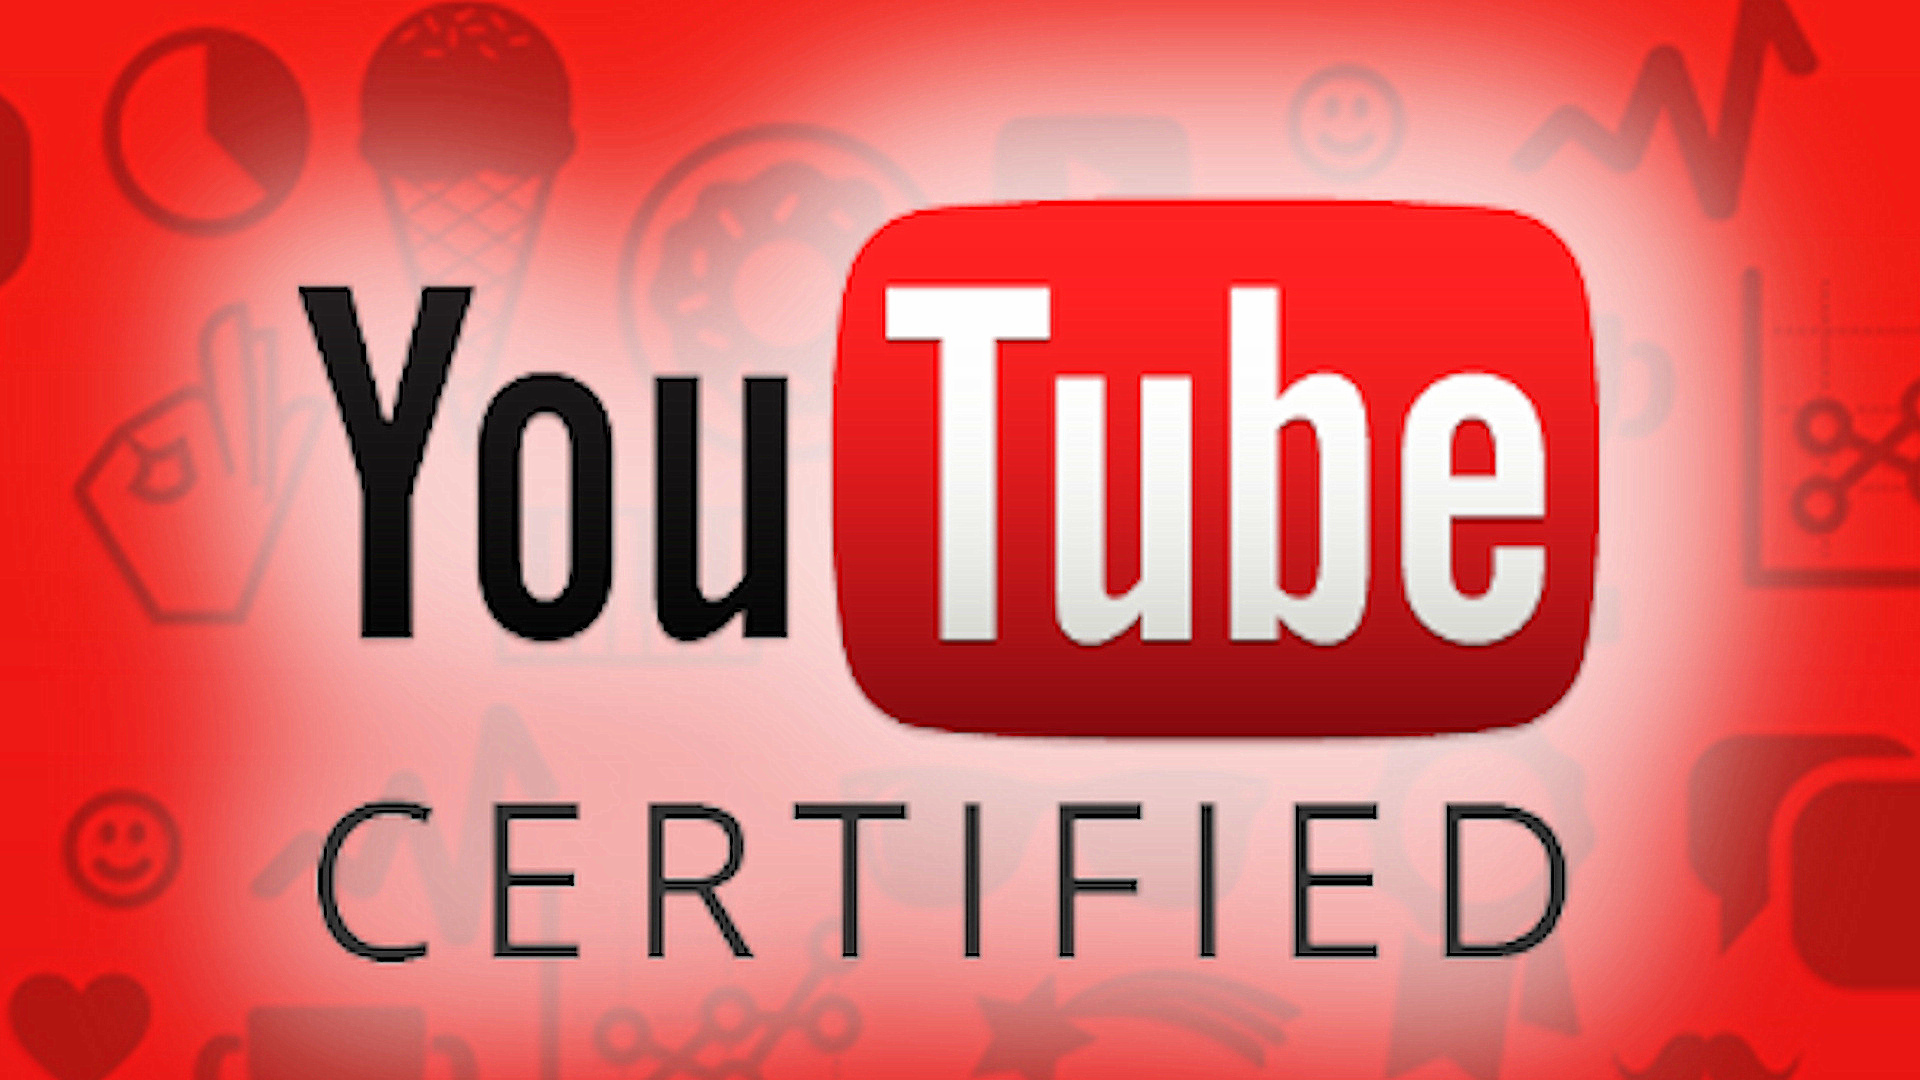 youtube certified, alan spicer, youtube expert, youtube certified expert, youtube certified exam, hire a youtube expert, youtube consultant, youtube coaching, youtube consultancy